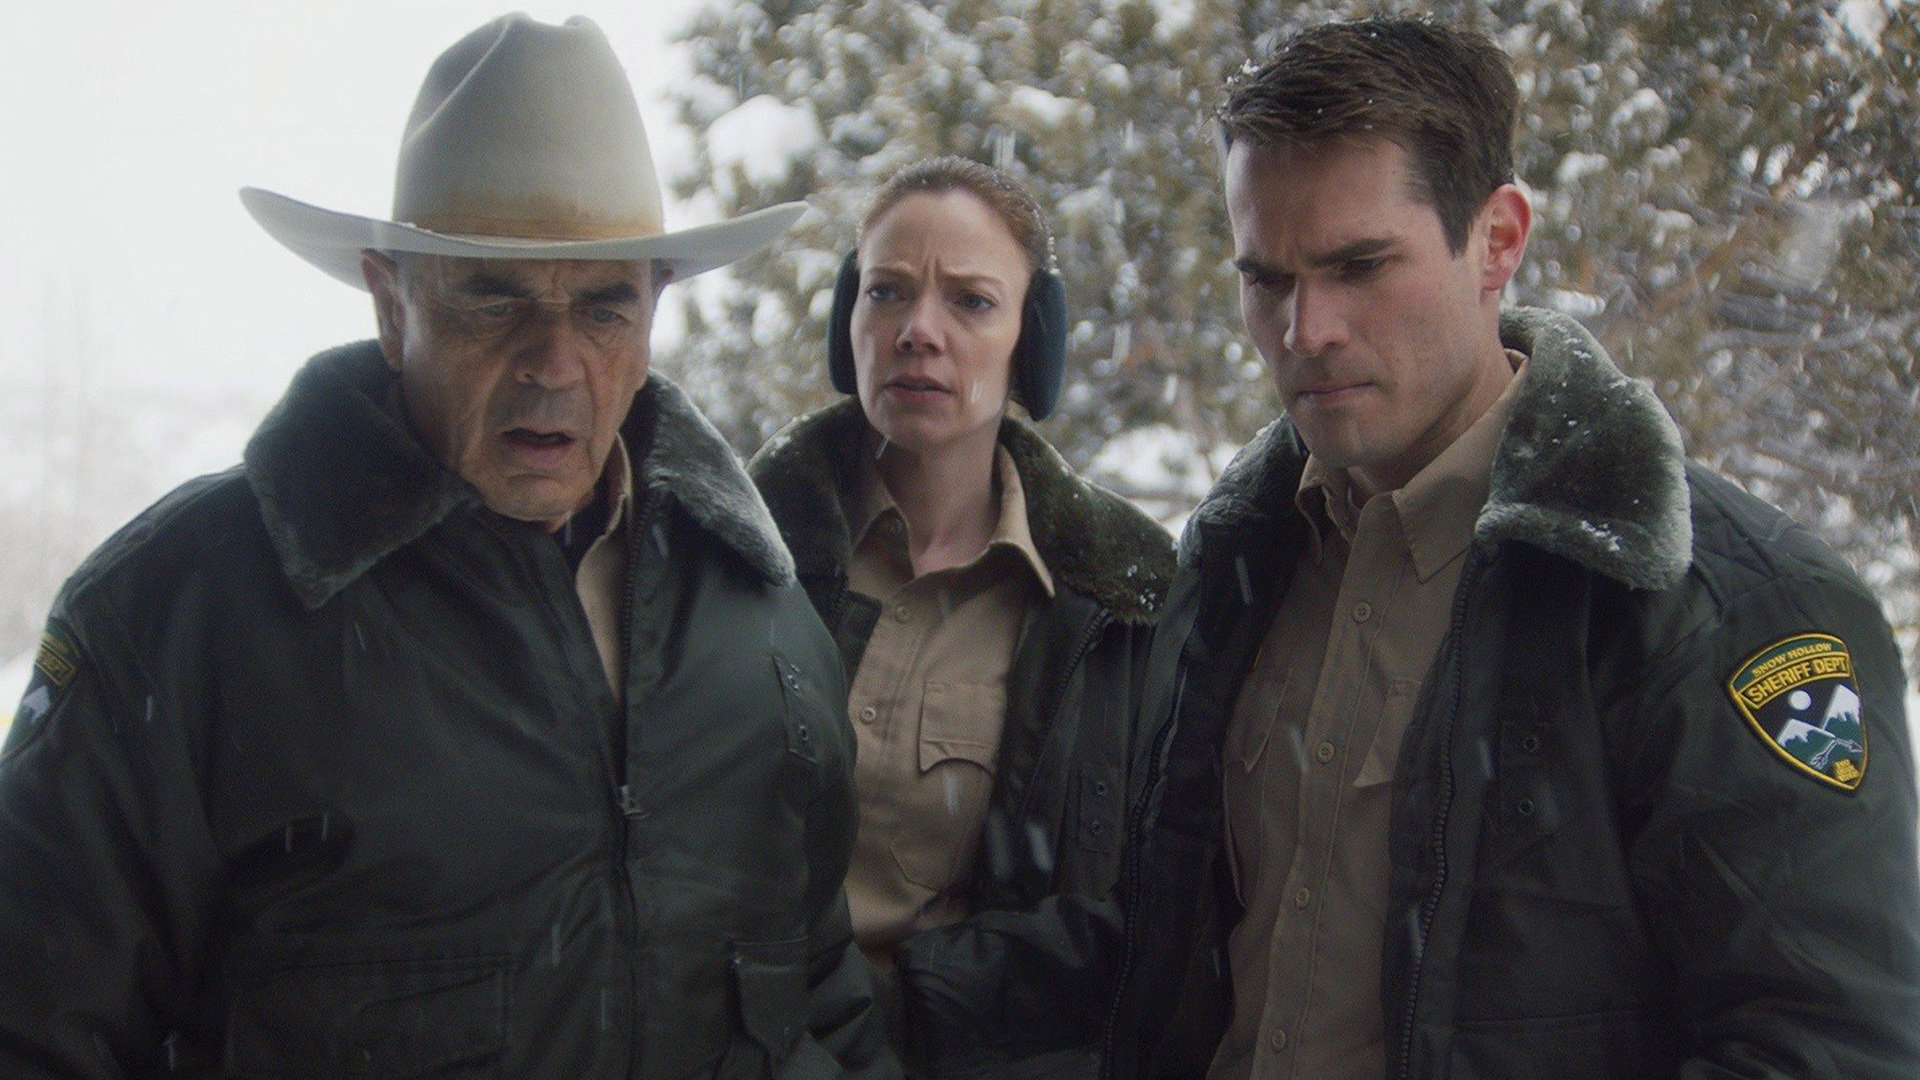 Robert Forster as the Old Sheriff in The Wolf of Snow Hollow